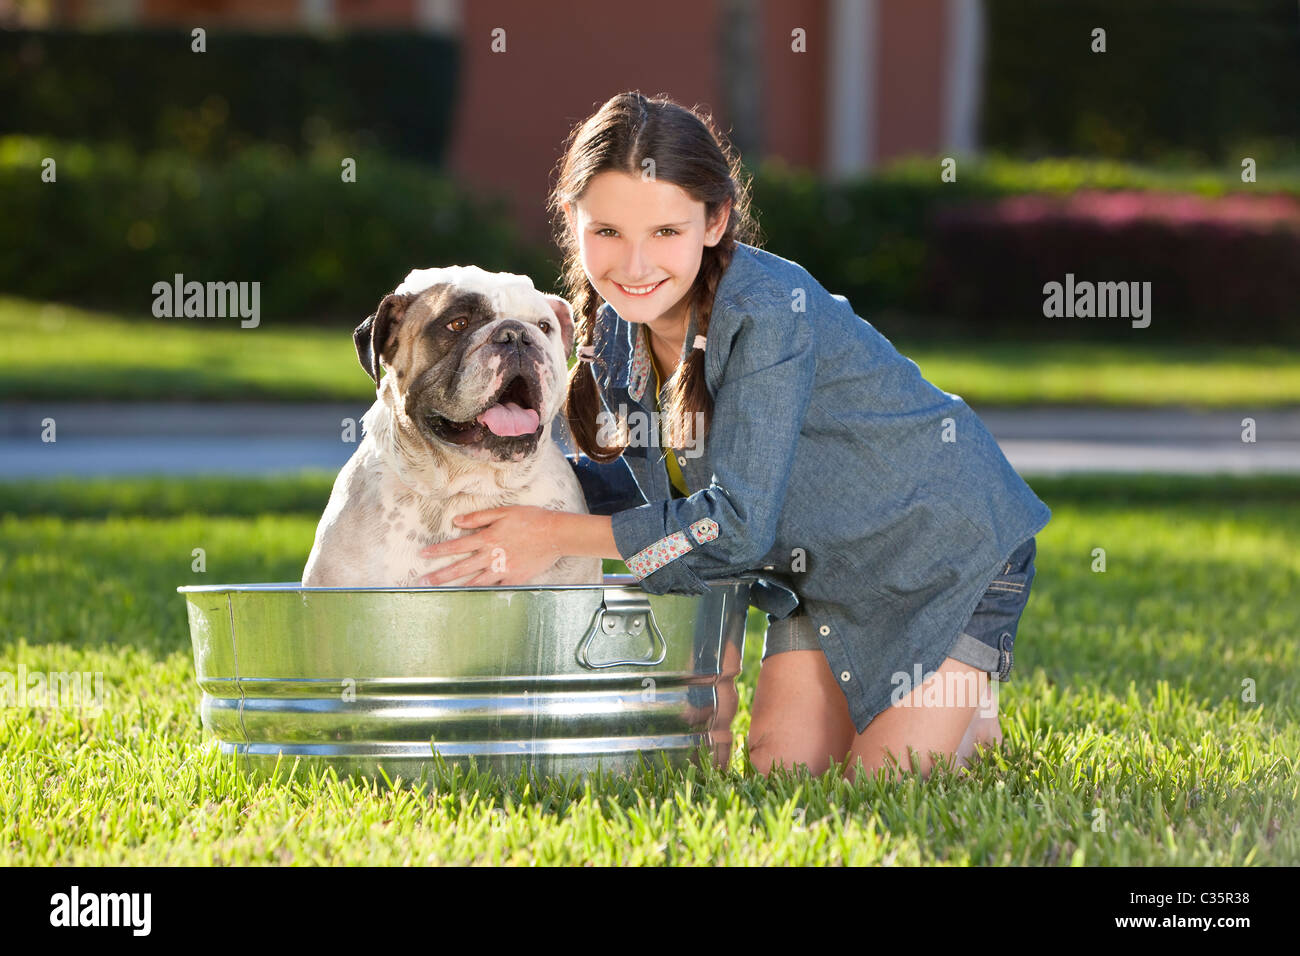 A pretty young girl washing her her pet dog, a bulldog, outside in a metal bath tub - Stock Image